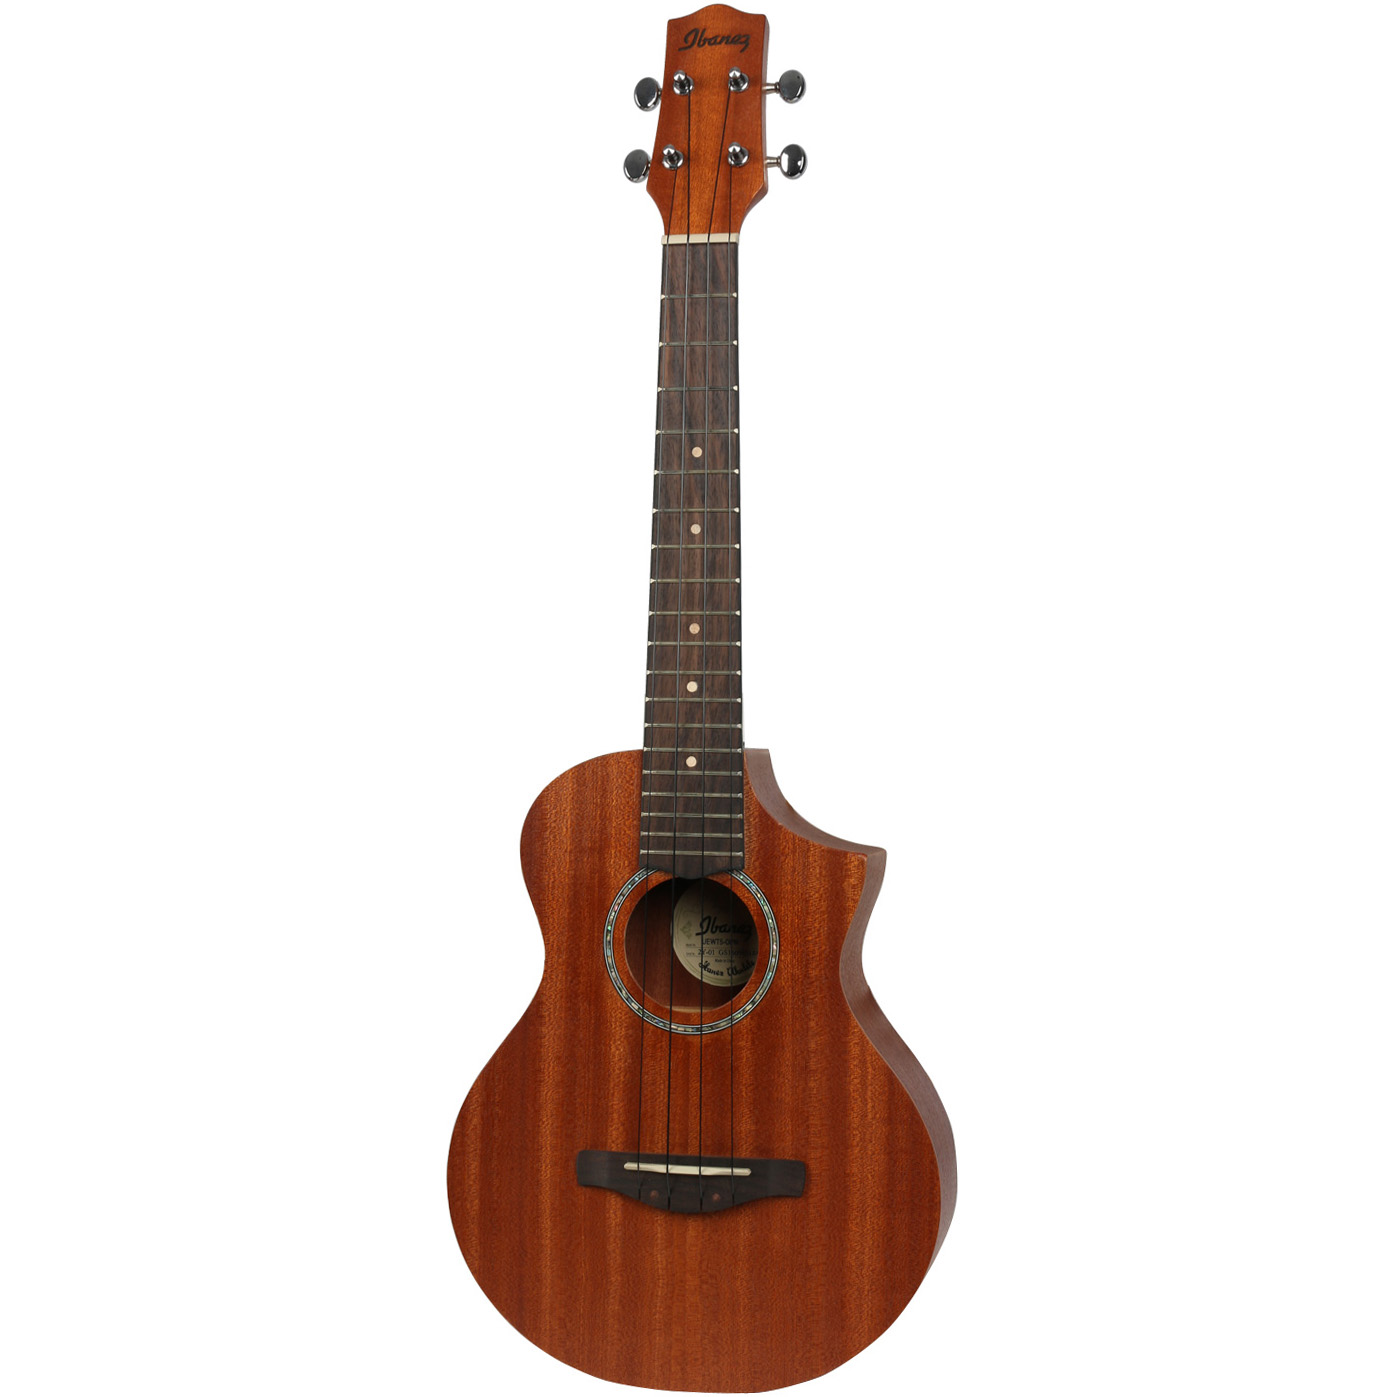 Ibanez UEWT5 OPN Open Pore Natural Tenor Ukulele